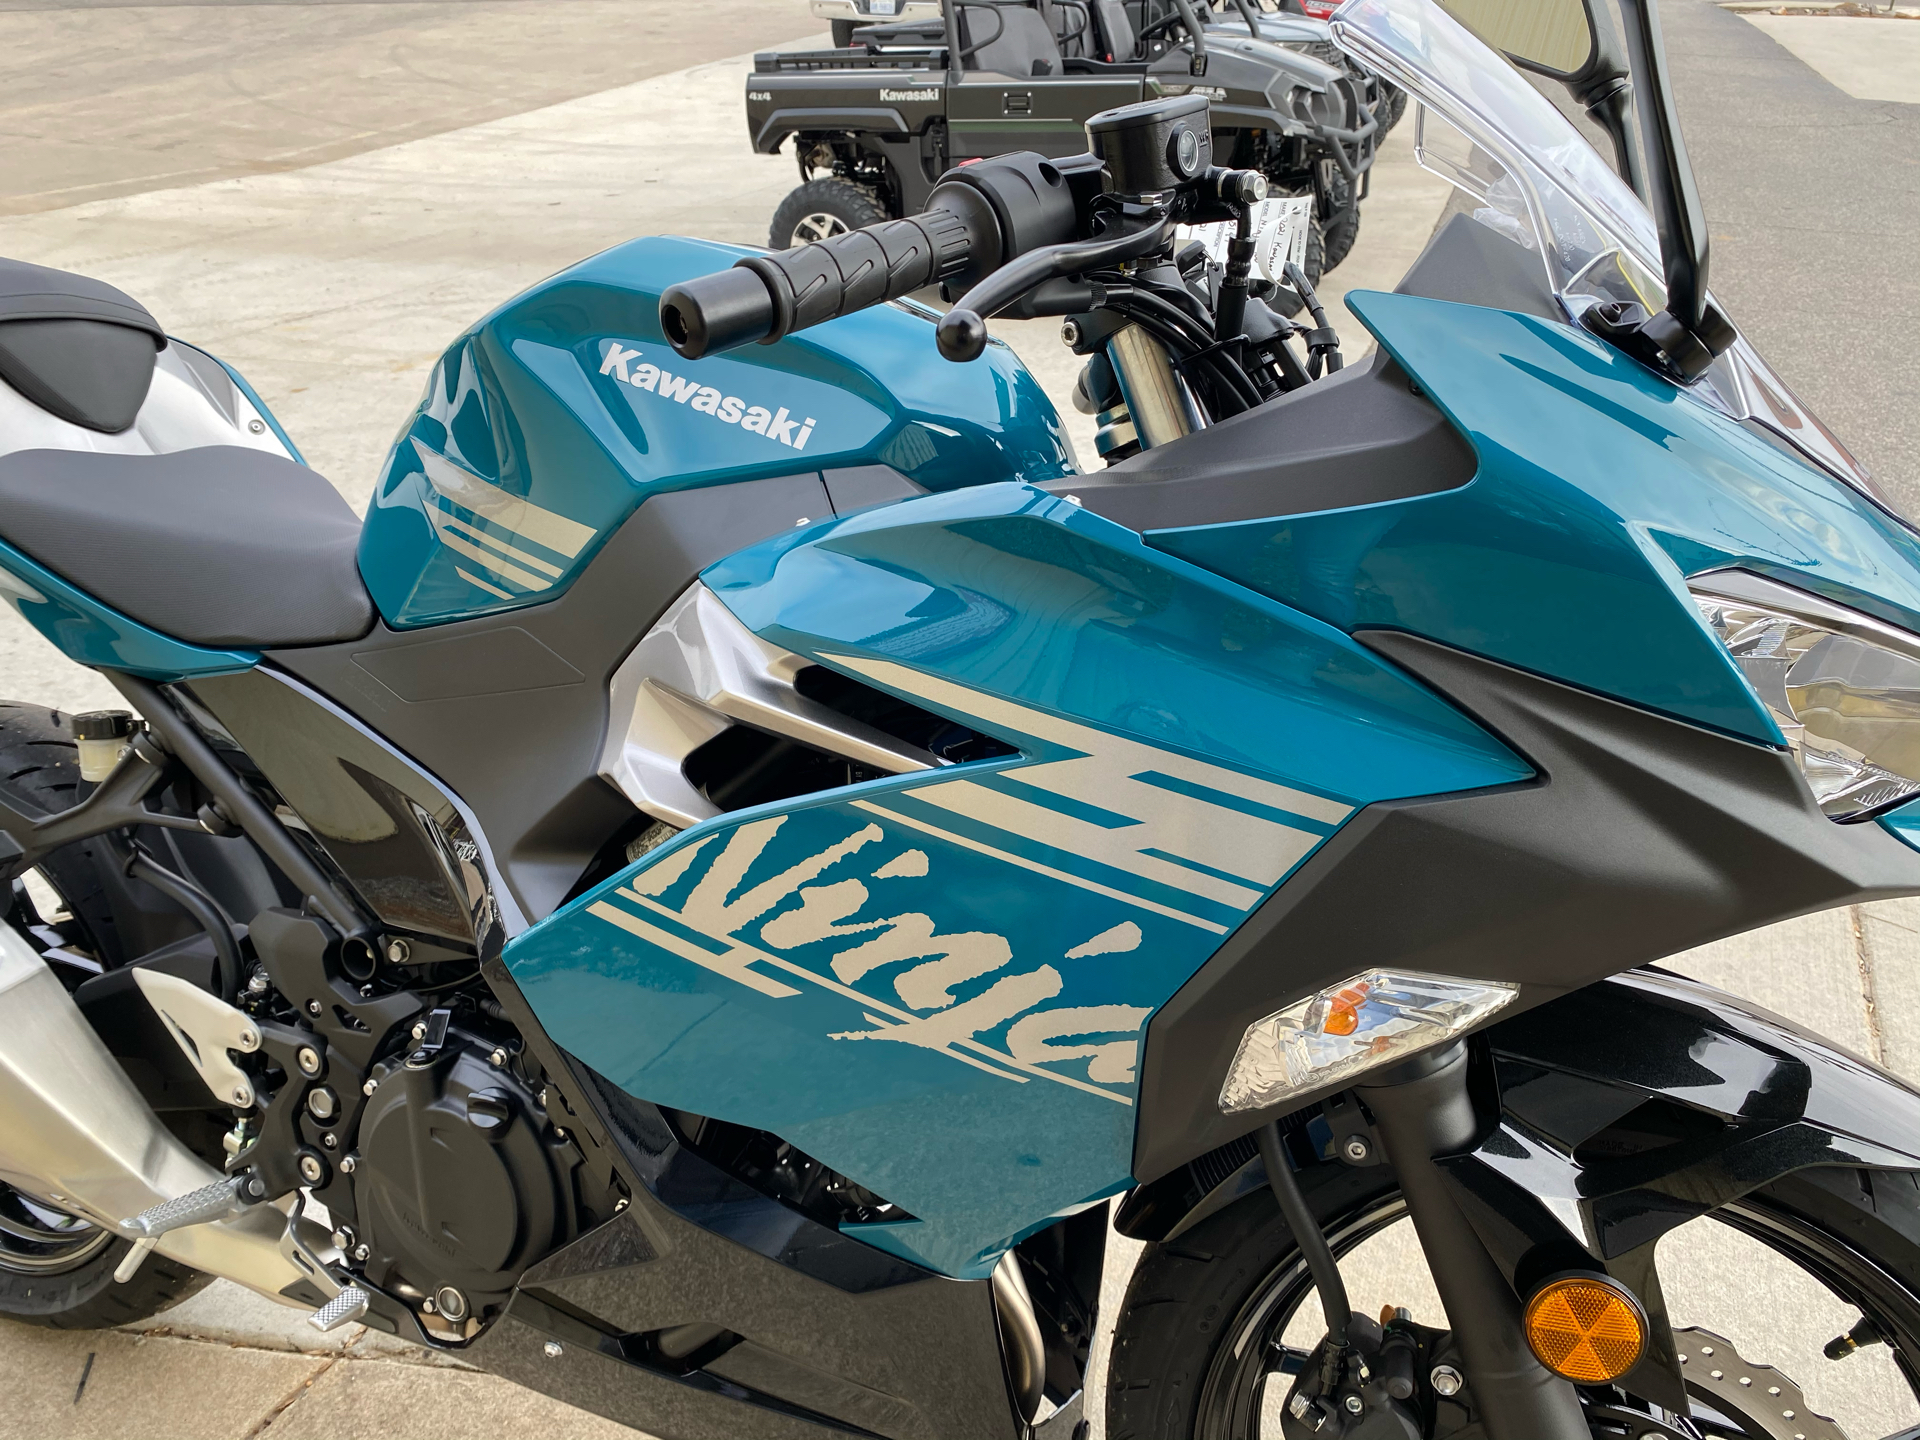 2021 Kawasaki Ninja 400 in Statesville, North Carolina - Photo 5